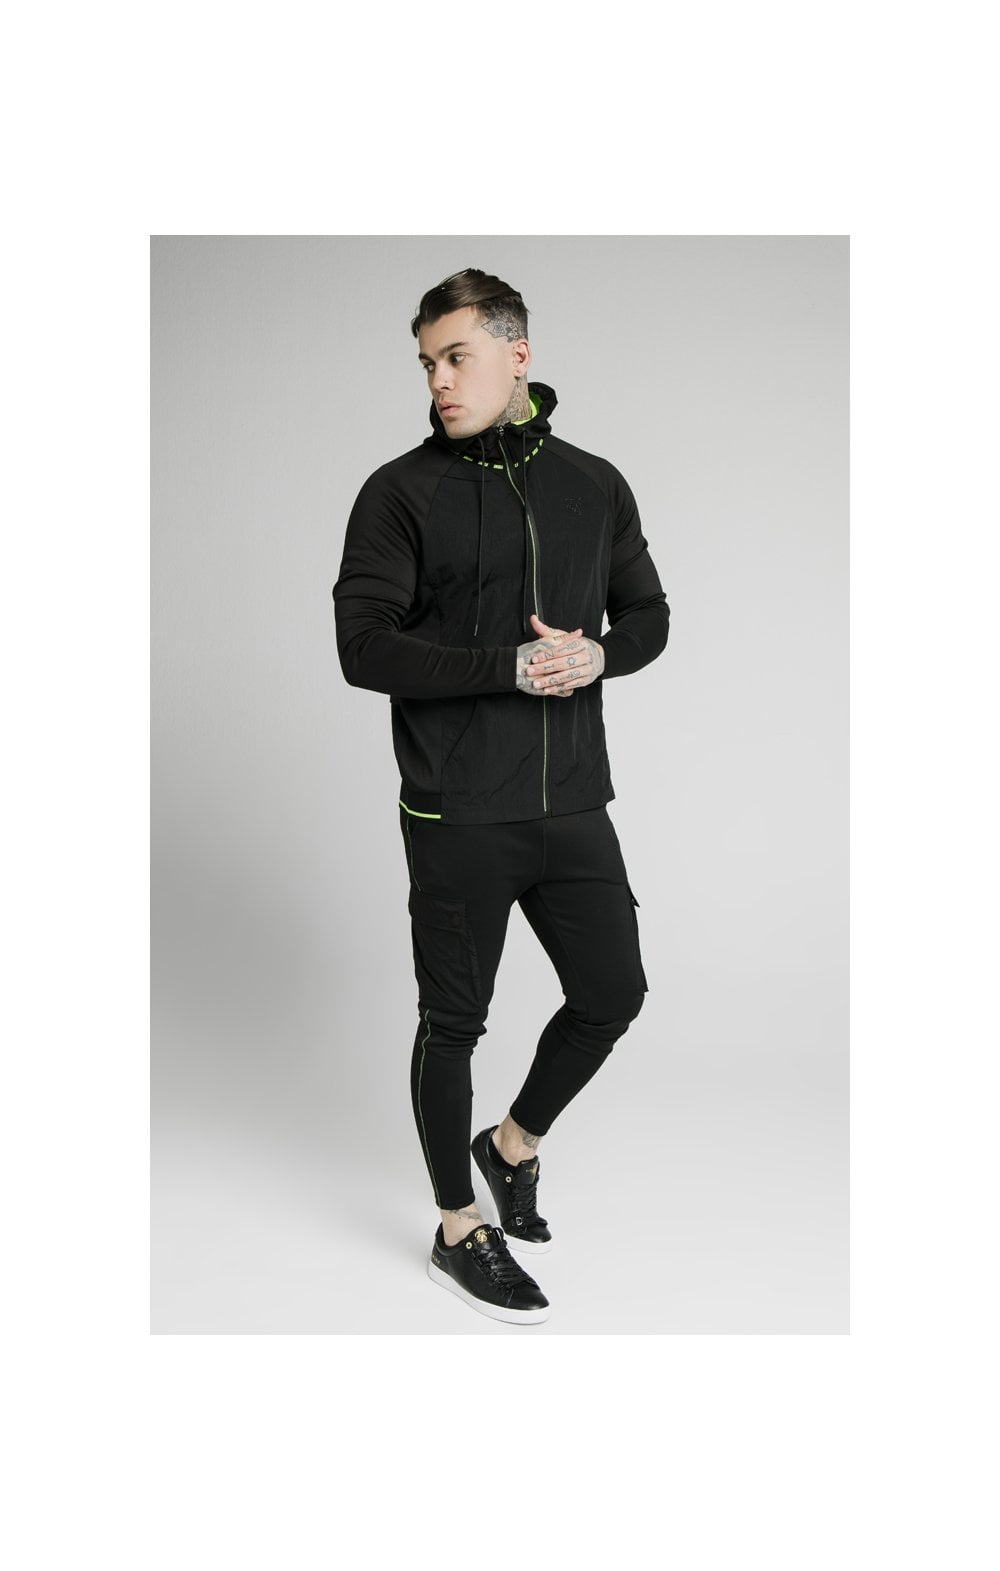 SikSilk Adapt Crushed Nylon Zip Through – Black (3)